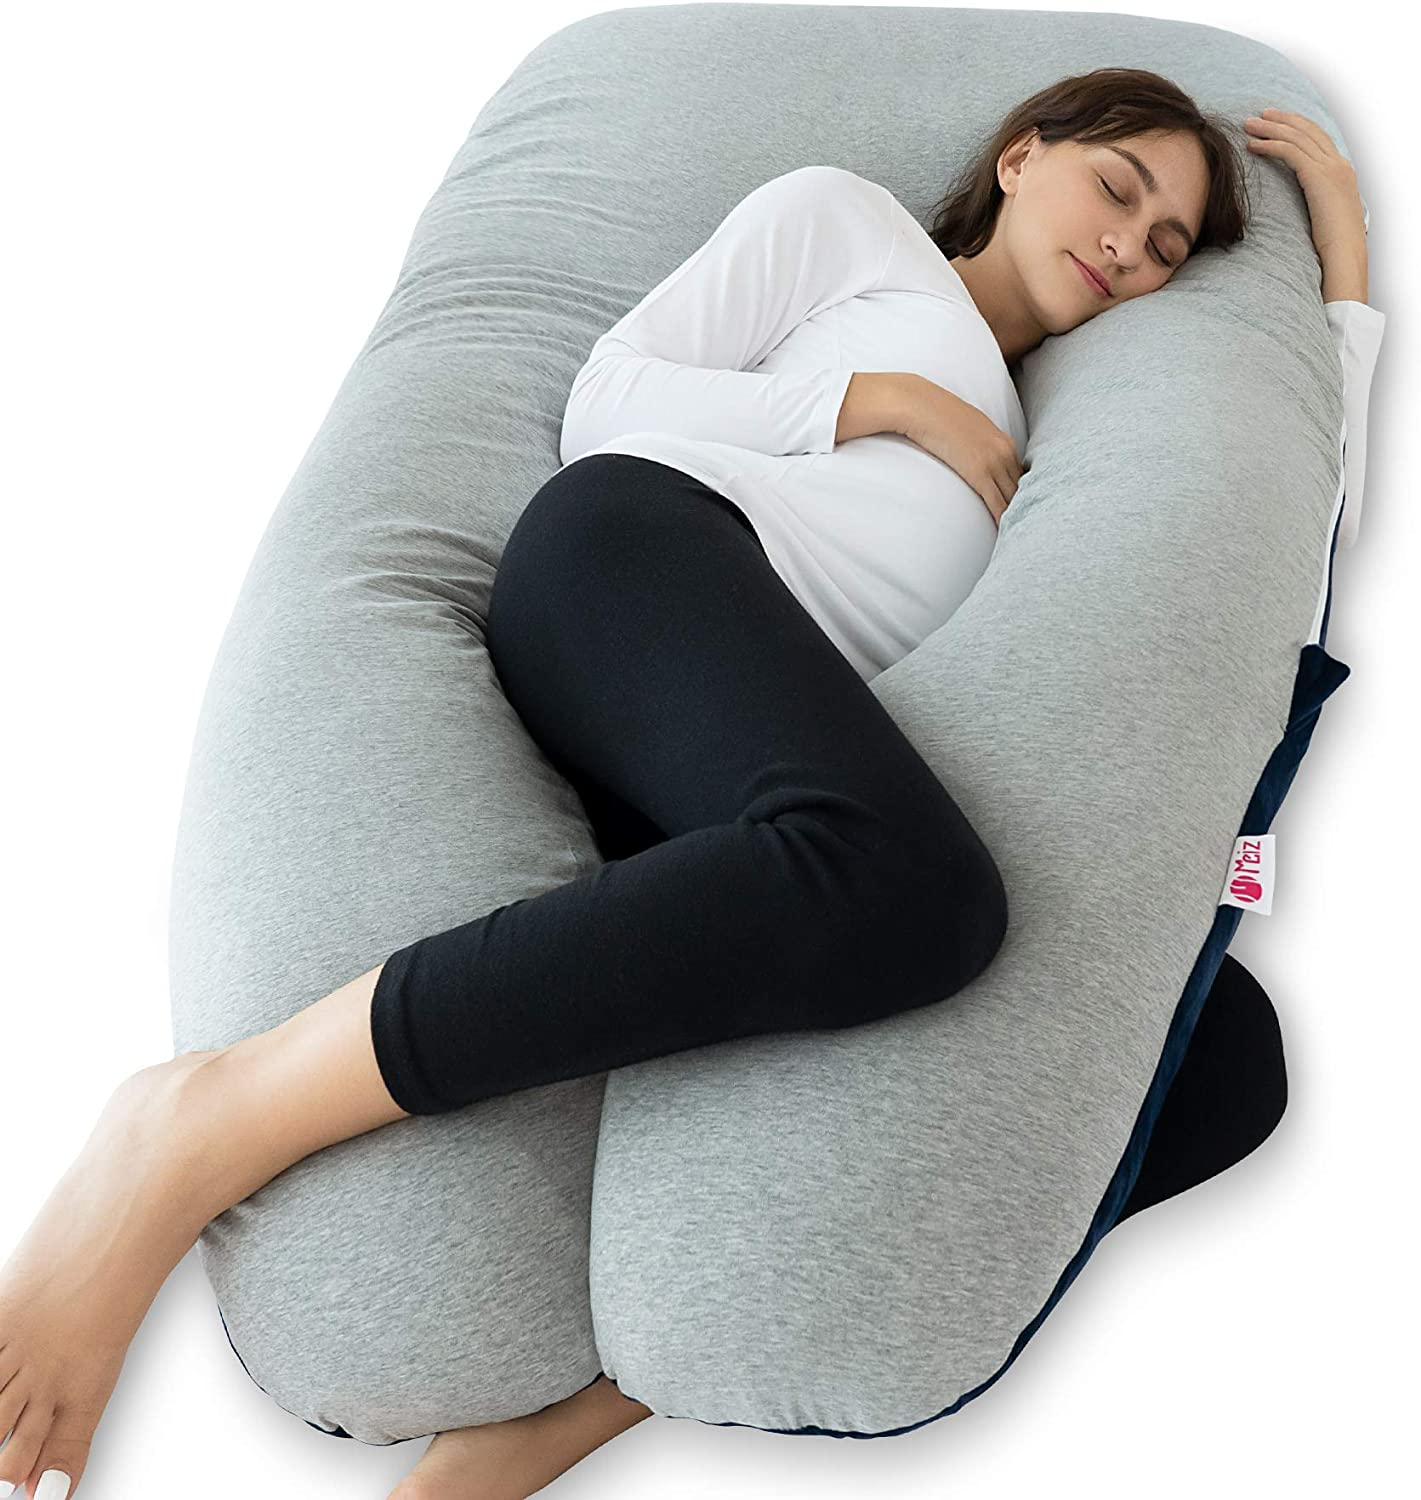 B075TZB1VY Meiz Pregnancy Pillow with Jersey Cover, Full Body Pregnancy Pillow with Velvet Cover, U Shaped Body Pillow for Pregnant Women, Maternity Pillow for Side Sleeping and Back Support, Blue & Grey 71vVHGfQNsL